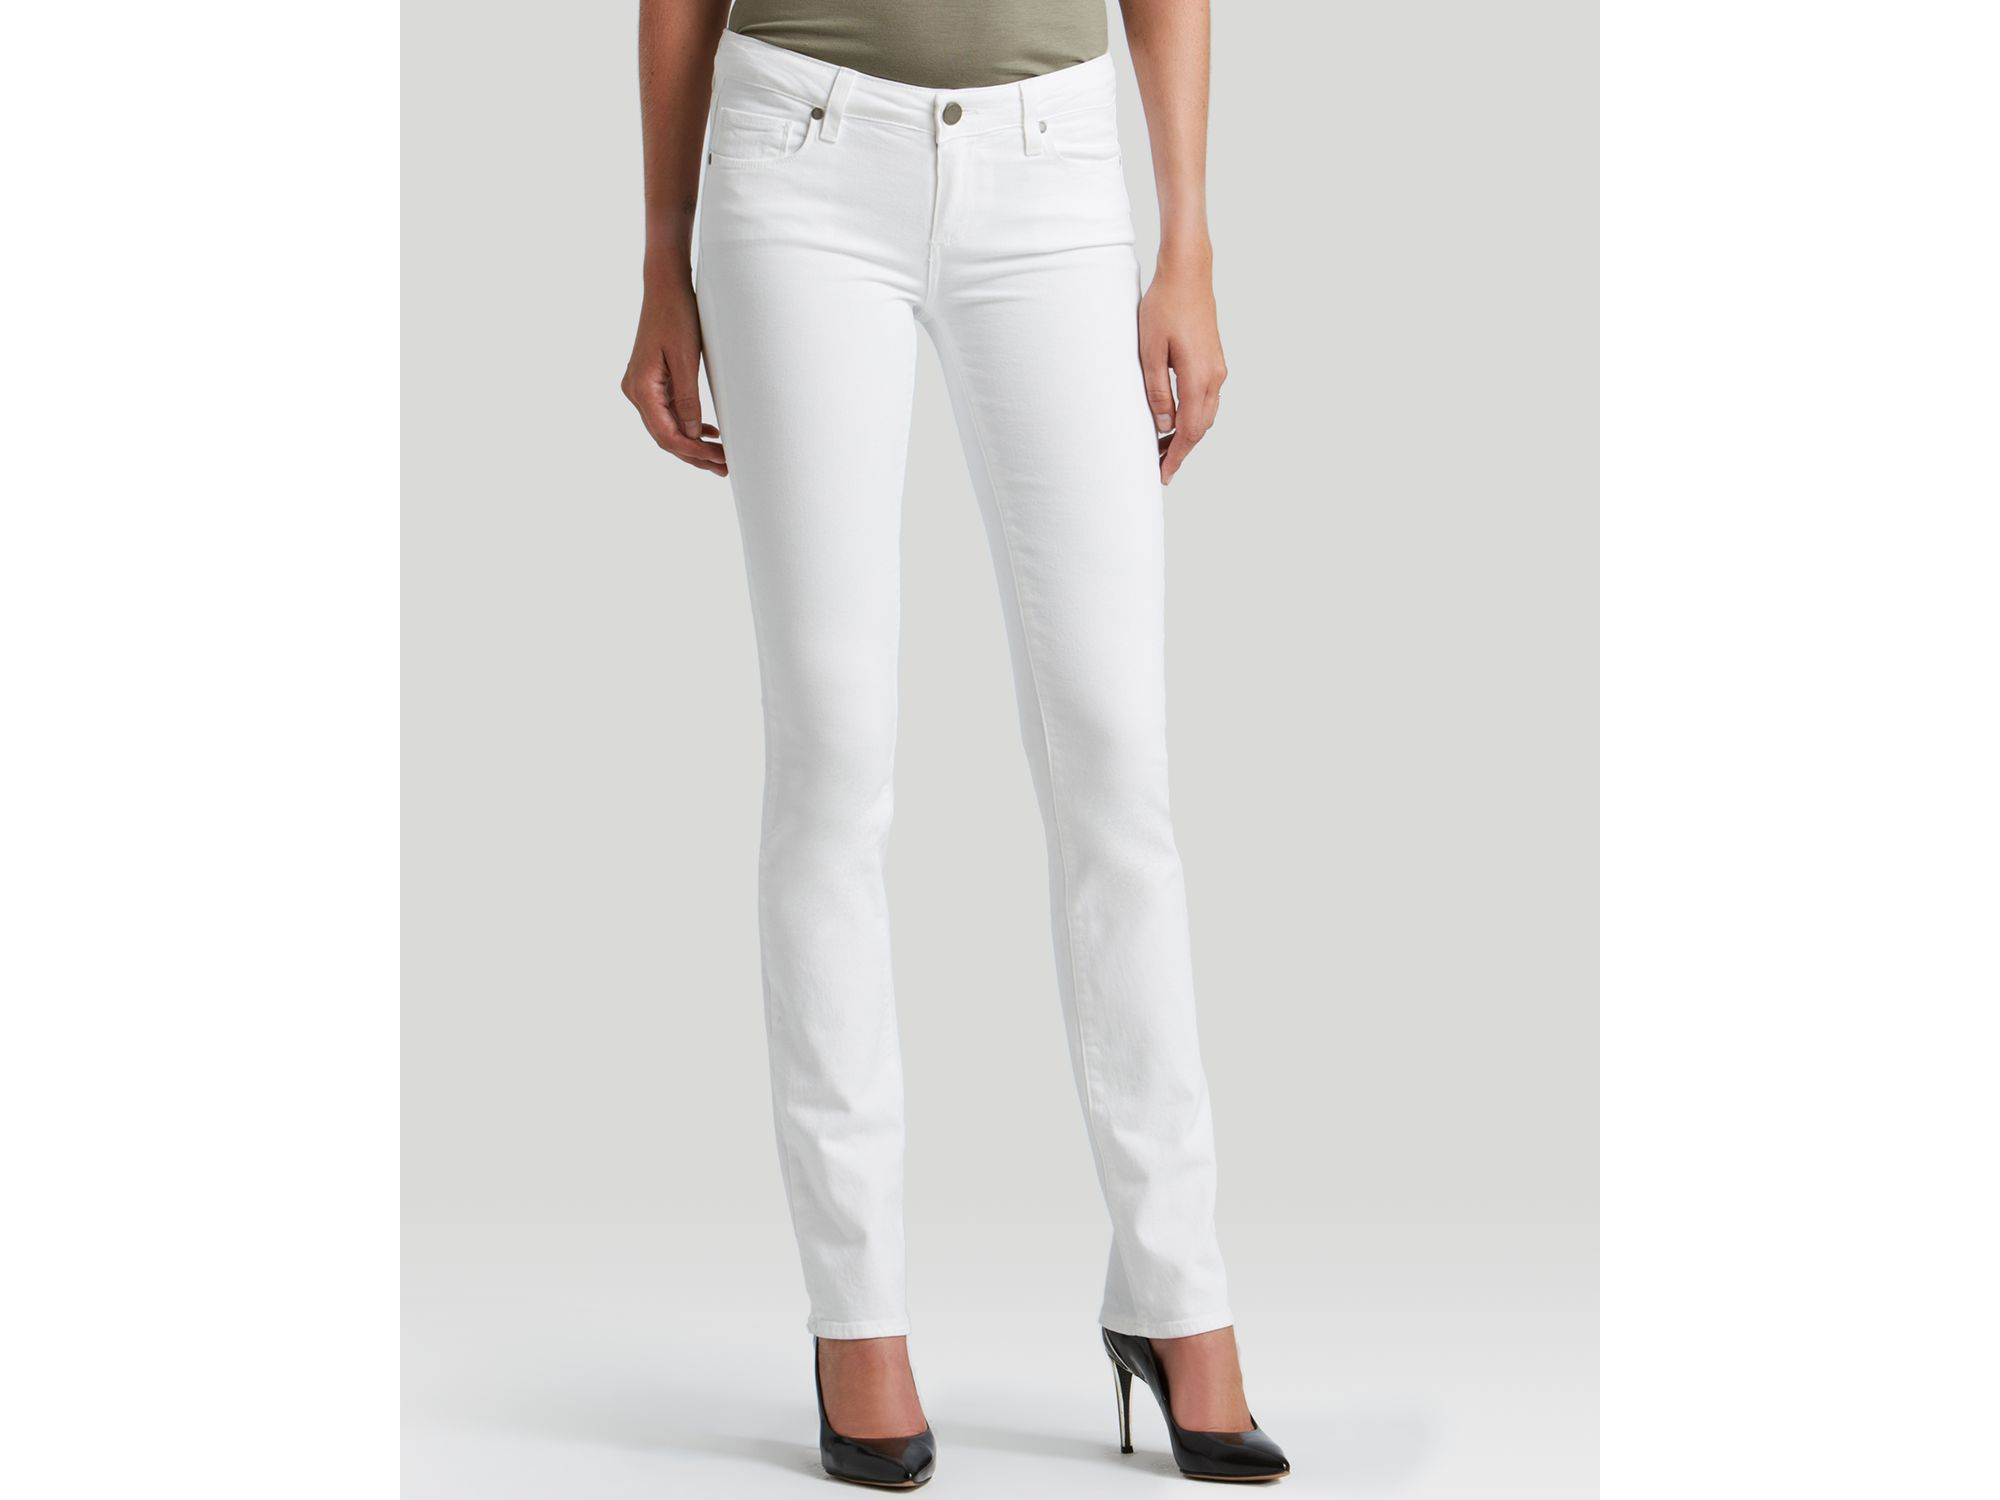 Paige Denim Jeans - Skyline Straight In Optic White in White | Lyst